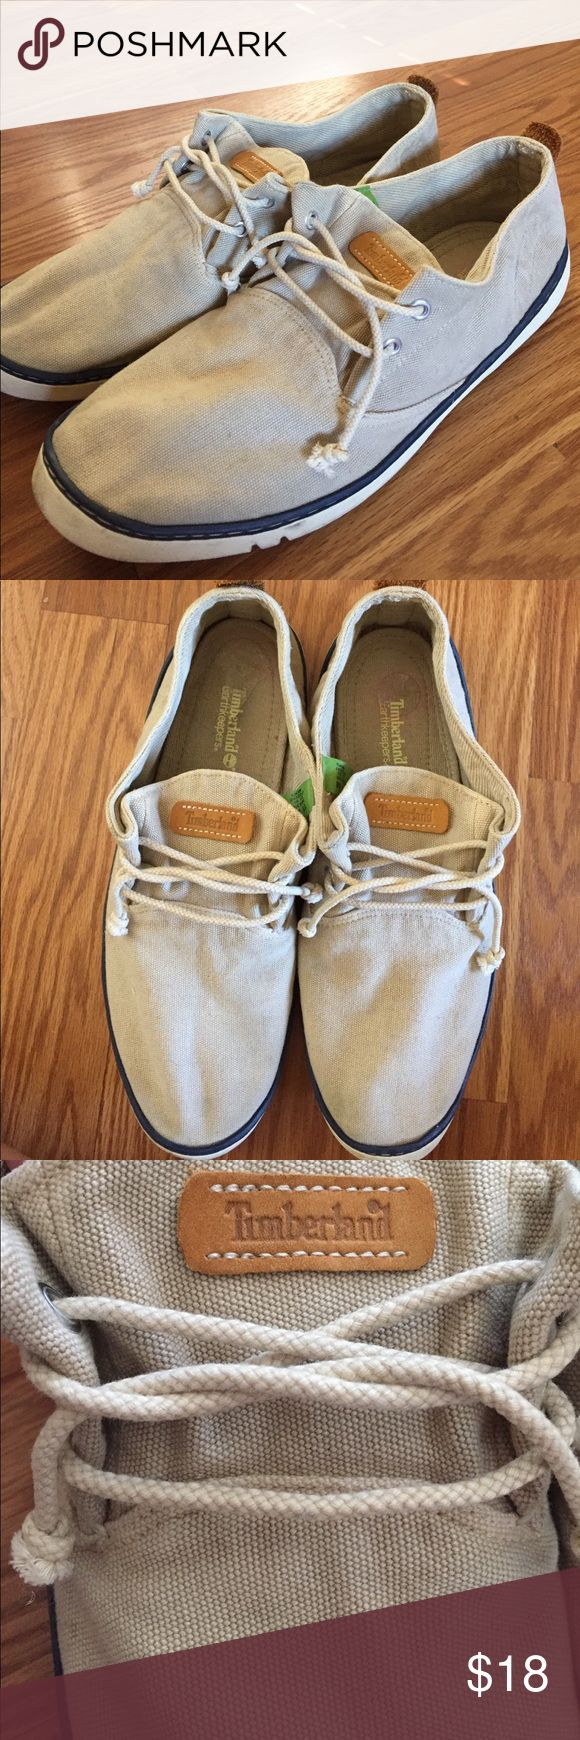 Timberland Men's shoes size 11 Timberland boat style shoes for men size 11. They can use a good clean but they are still in good condition! Hey ask have removable soles (pictured). Timberland Shoes Loafers & Slip-Ons